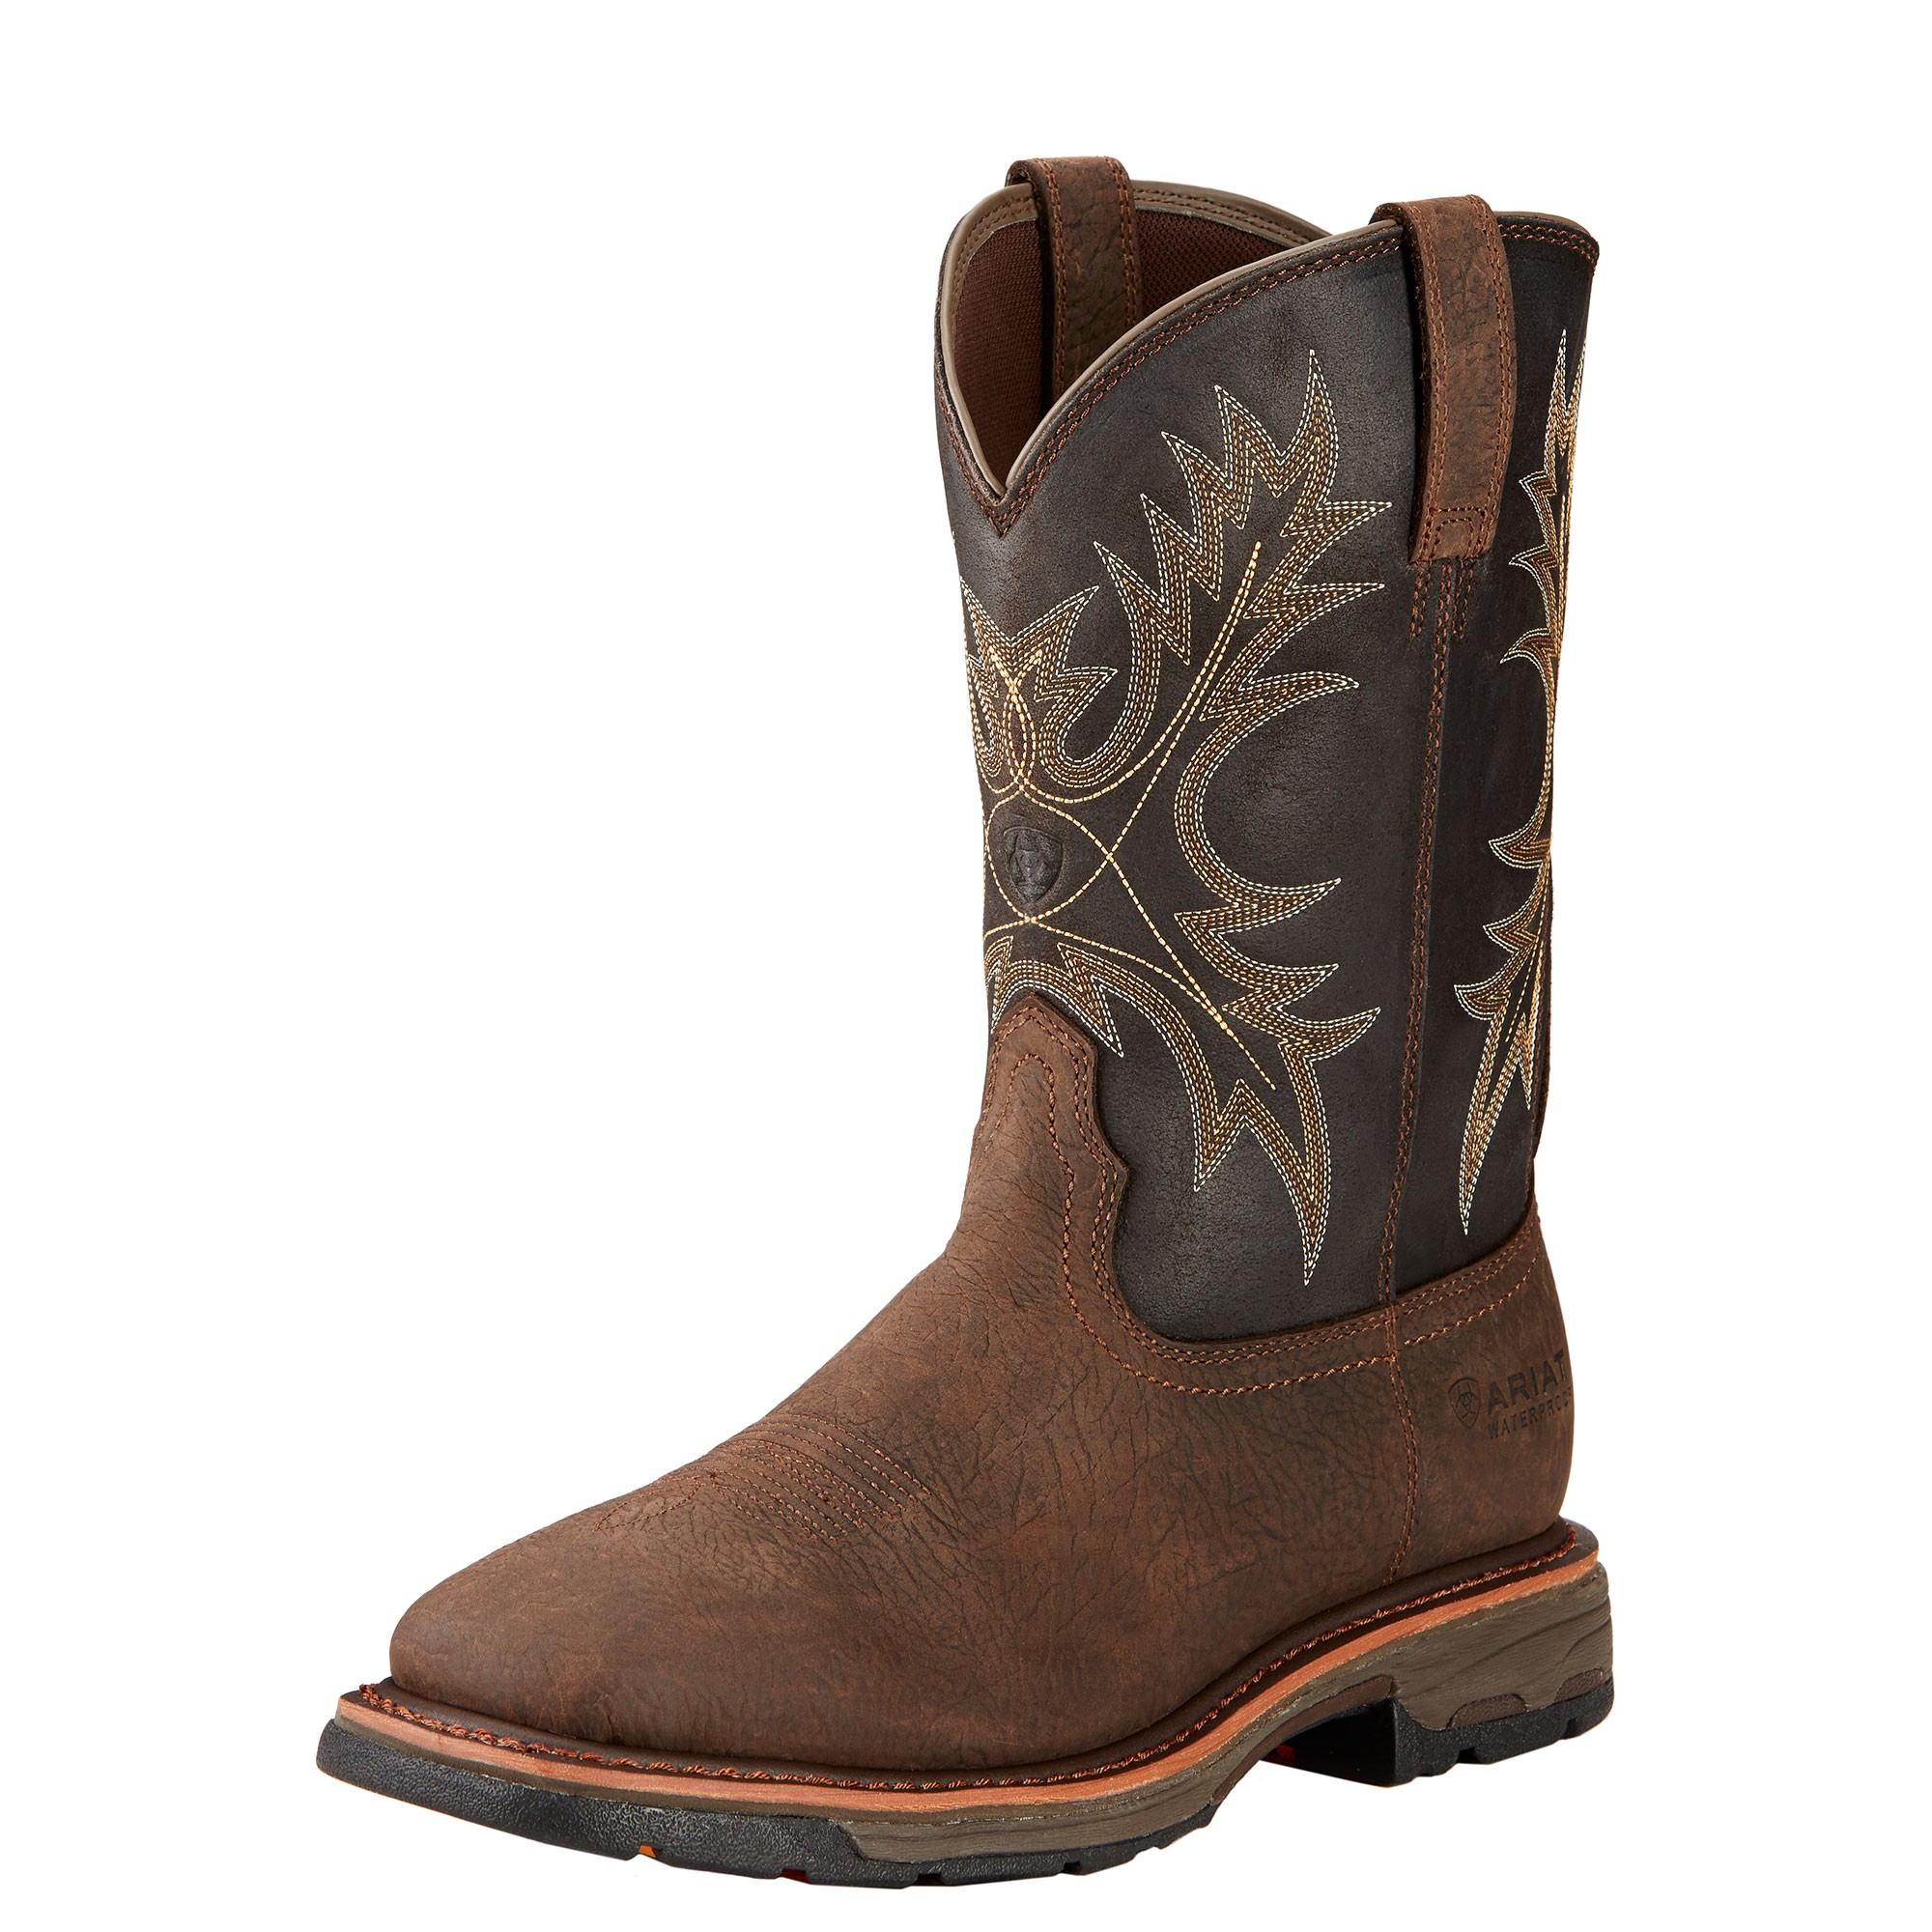 Where Are Ariat Boots Made 0BVrJFNy